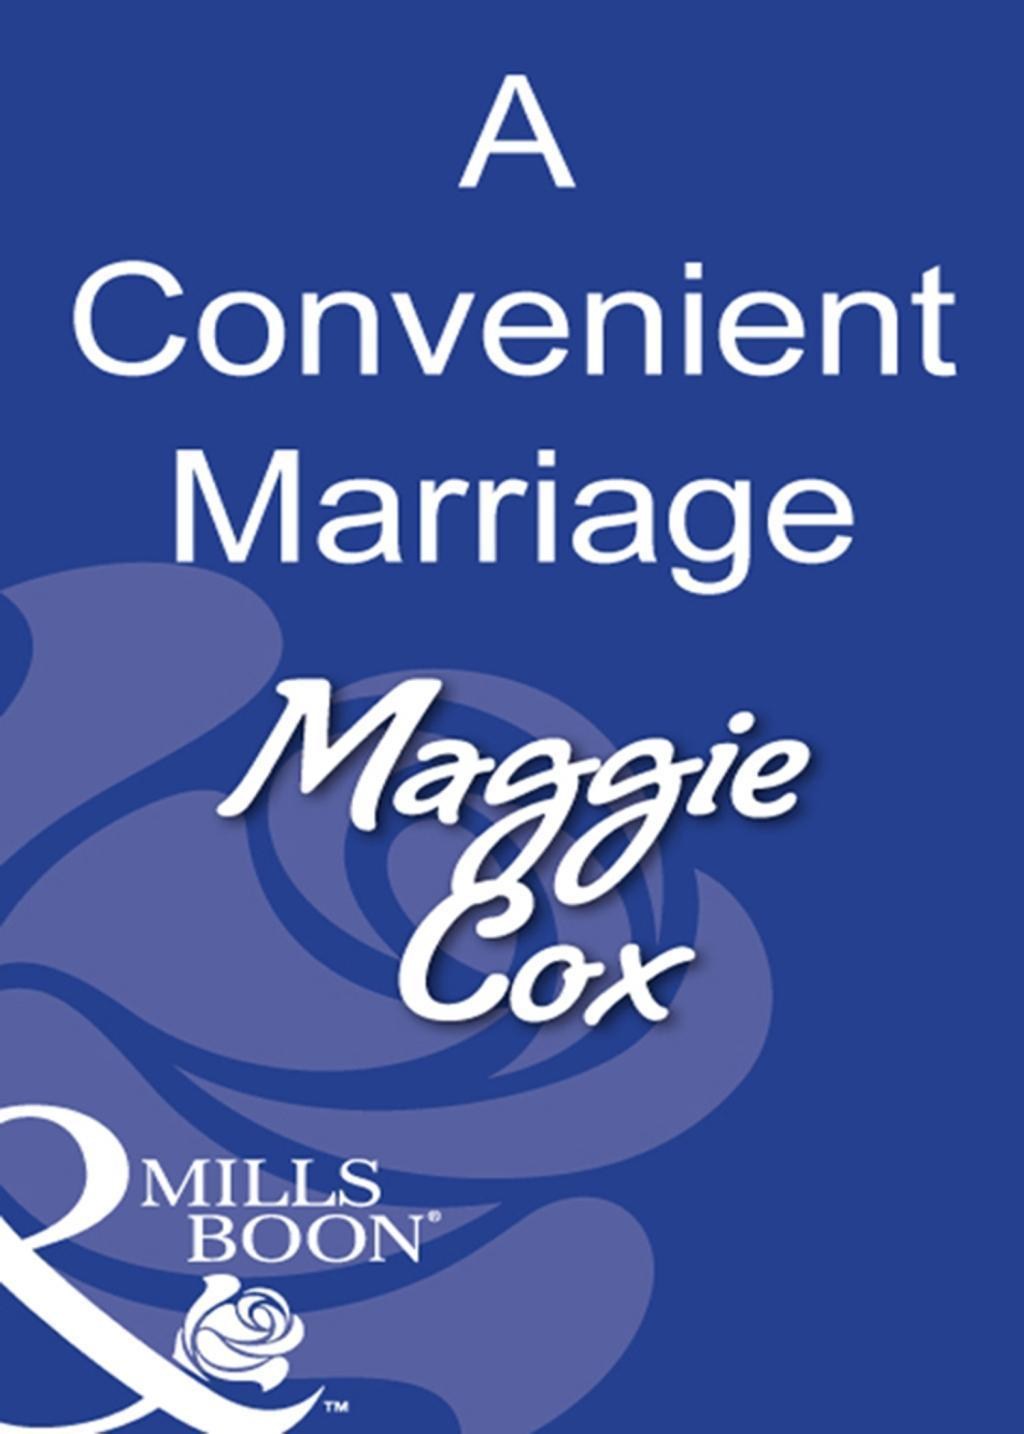 A Convenient Marriage (Mills & Boon Modern)